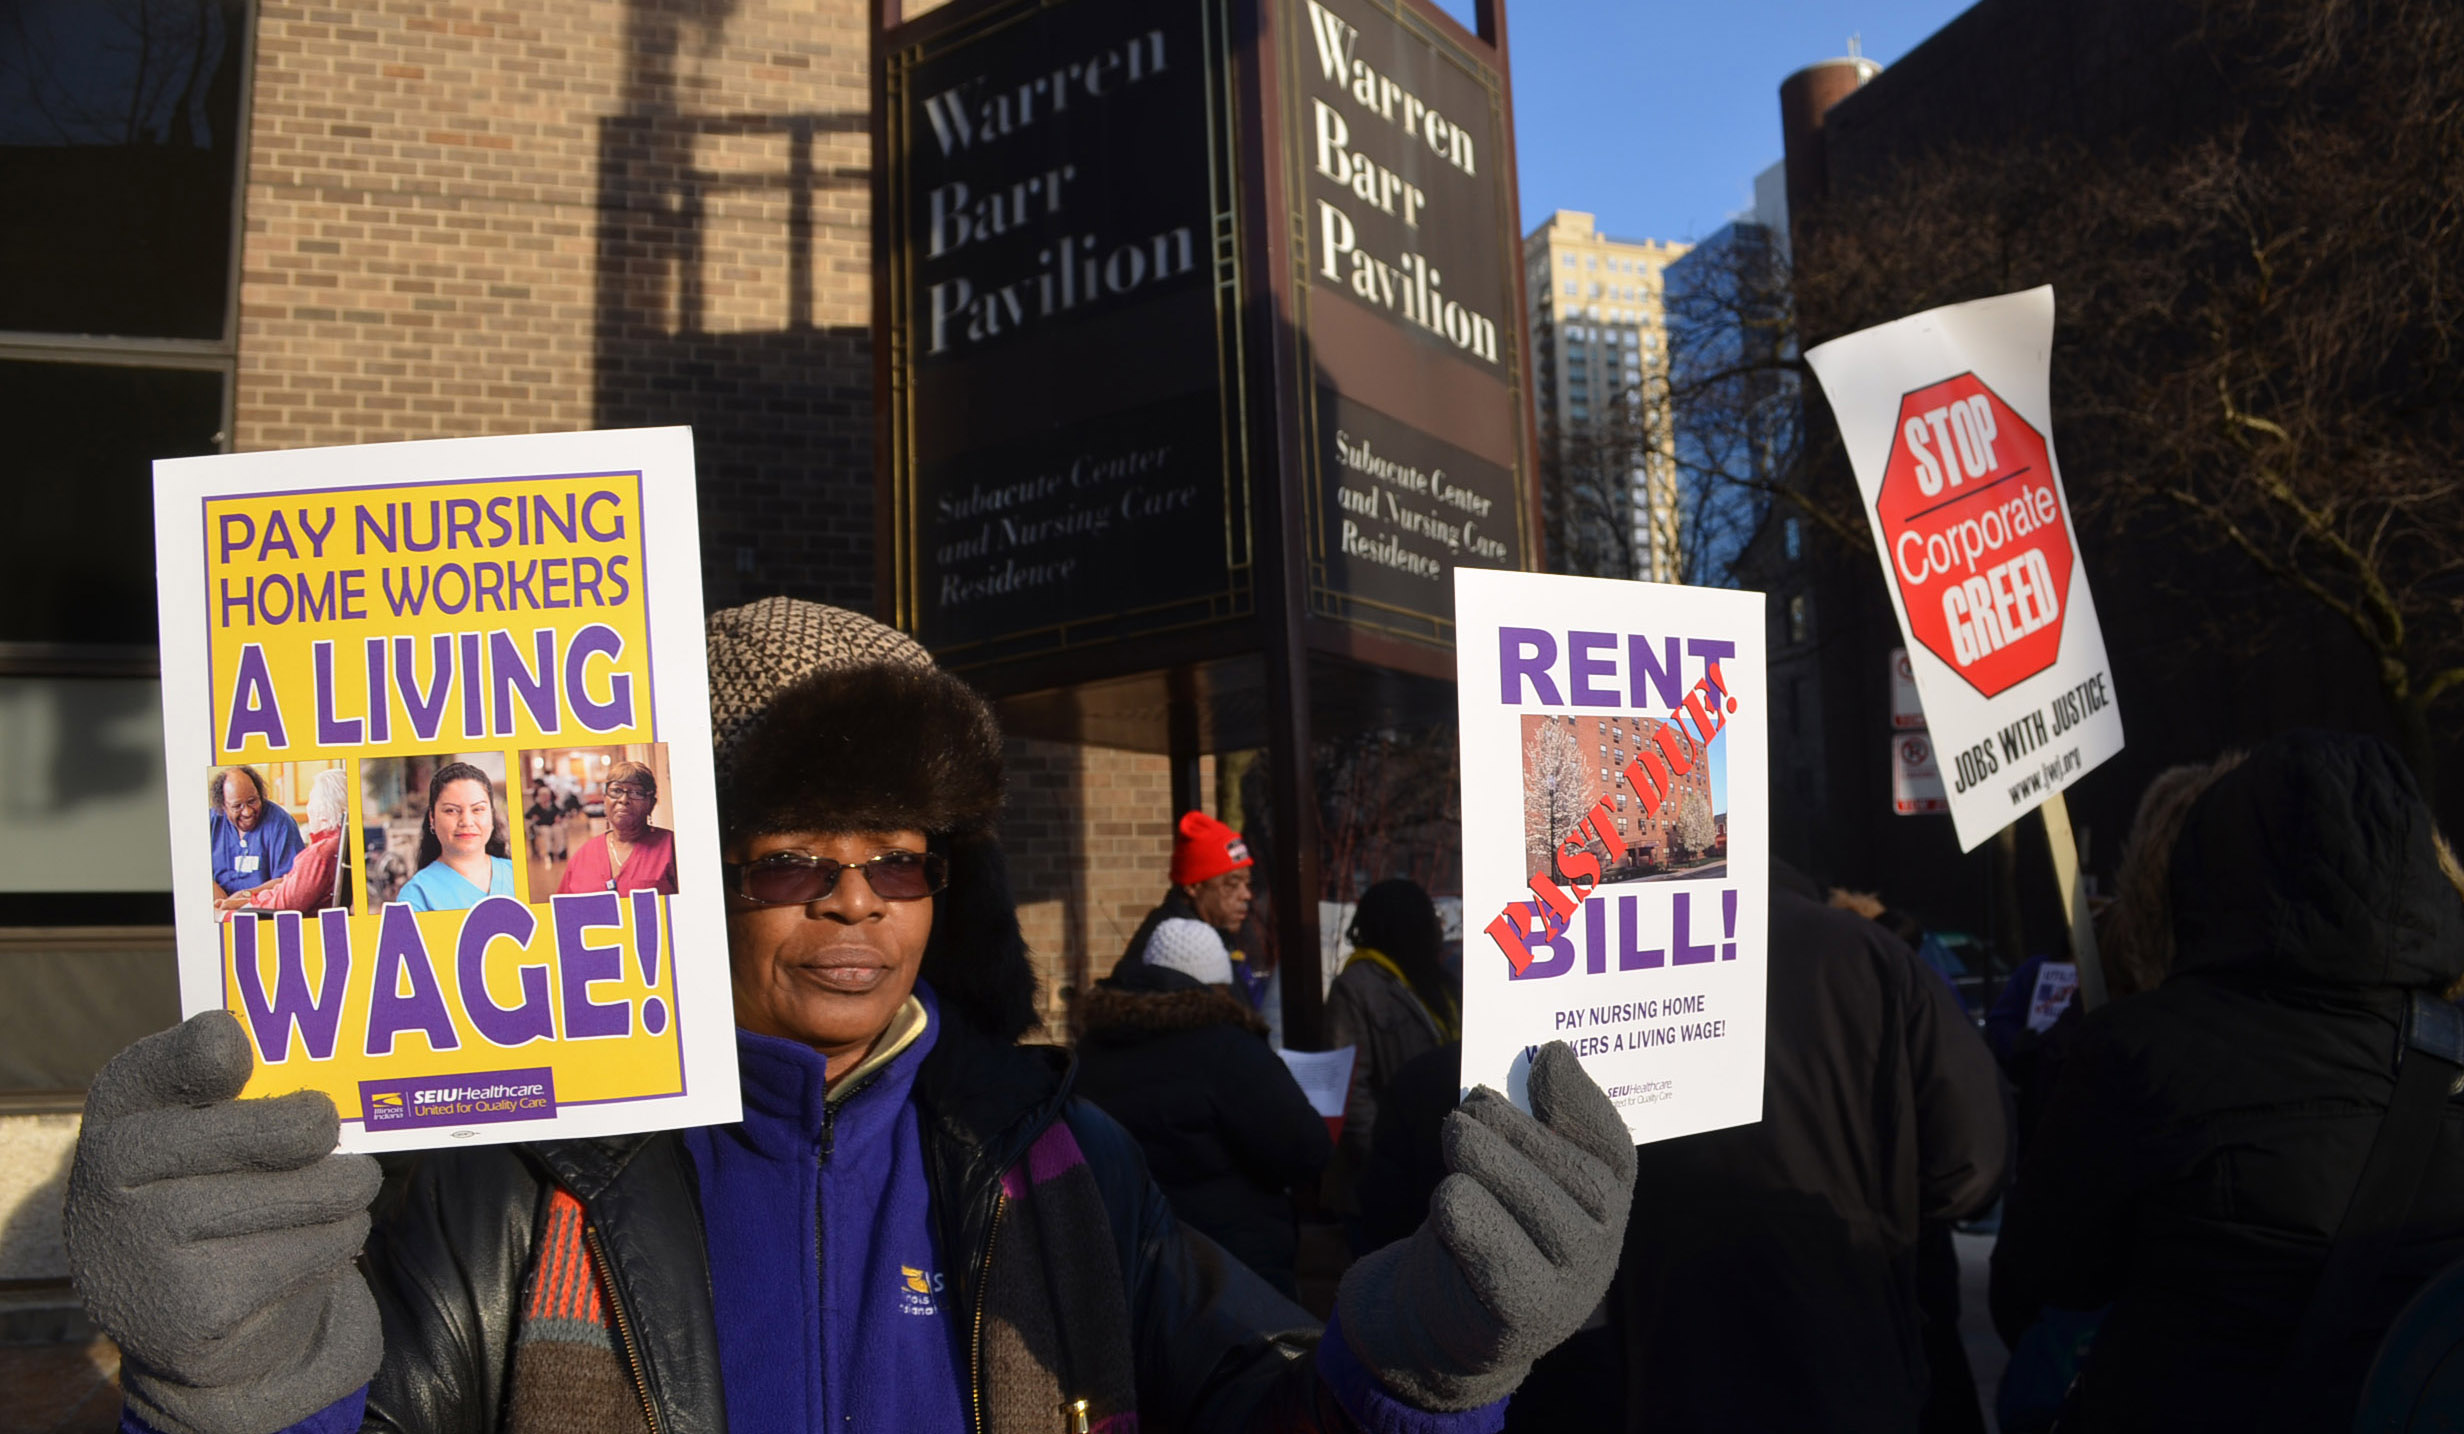 Workers demonstrate for living wages at Warren Barr Pavilion nursing home in Chicago.